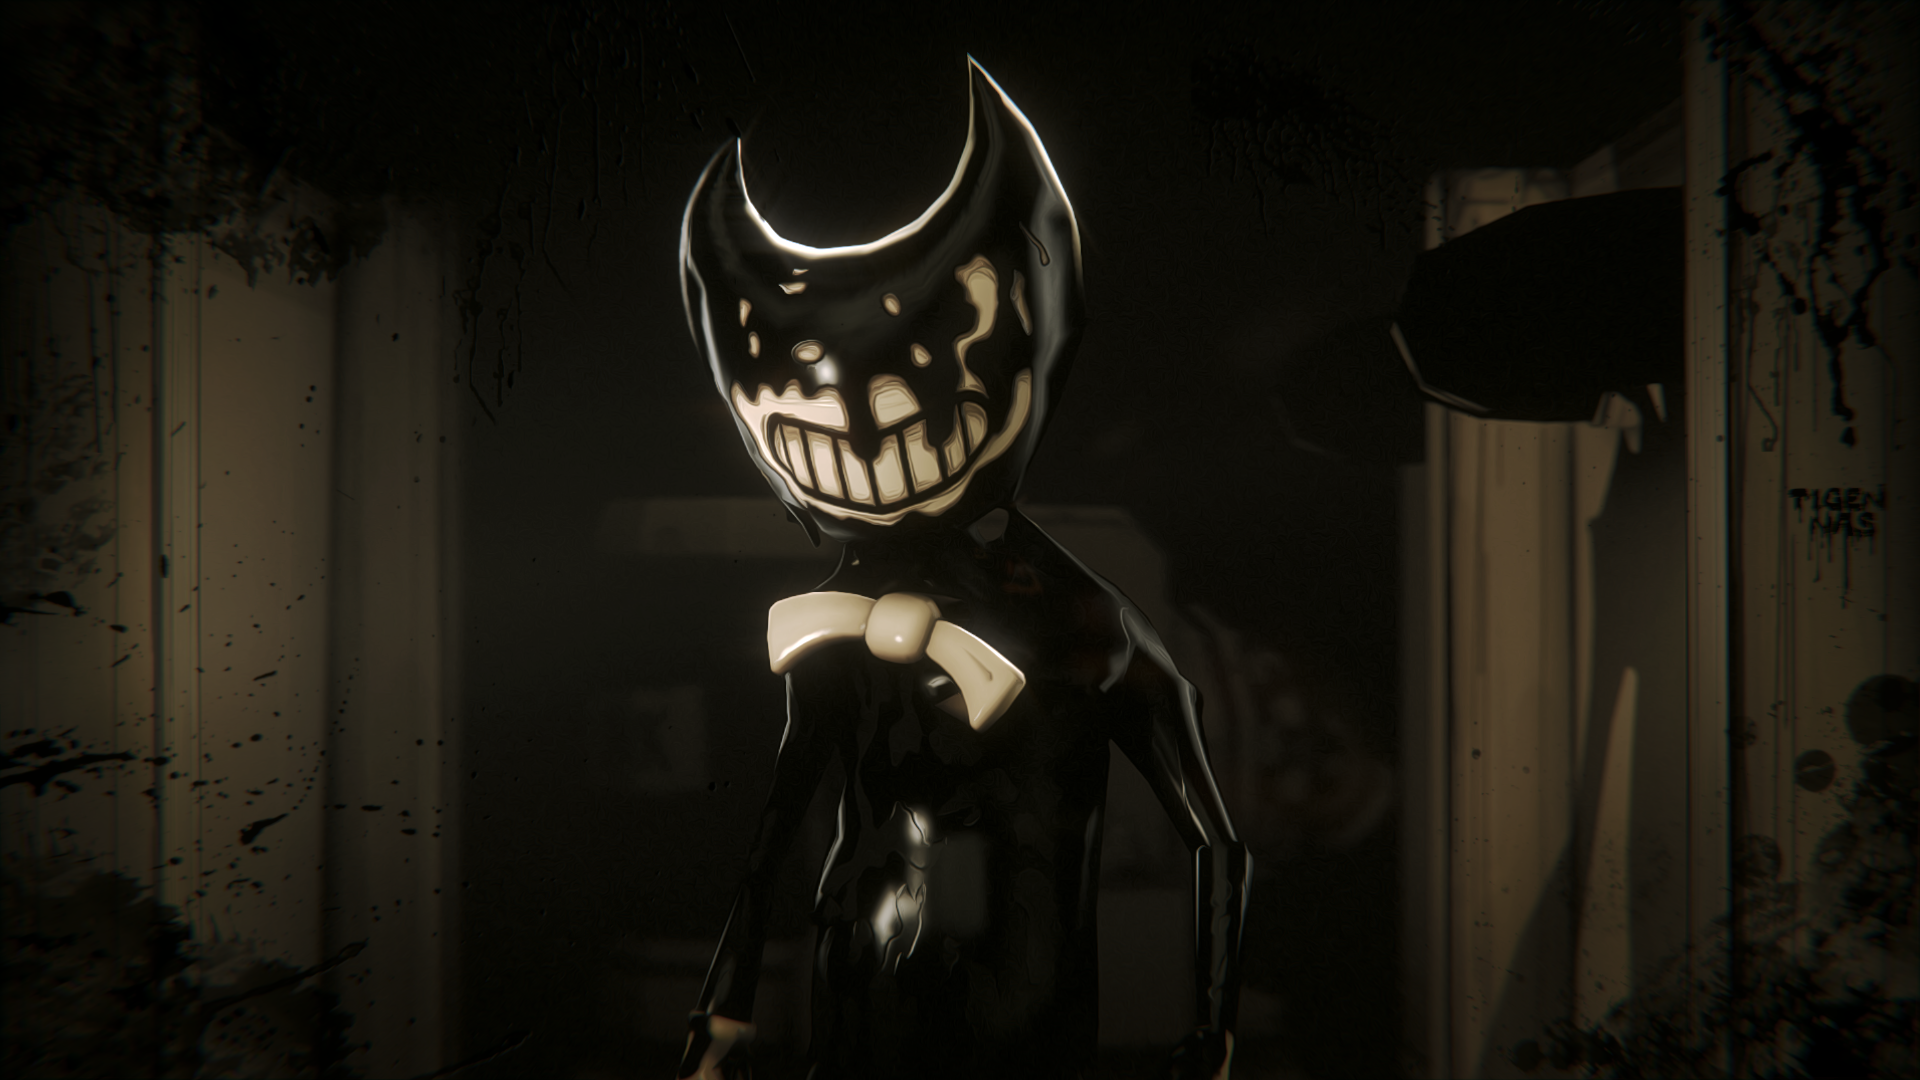 Free Download Sfm Ink Bendy By Batchatillion25t 1920x1080 For